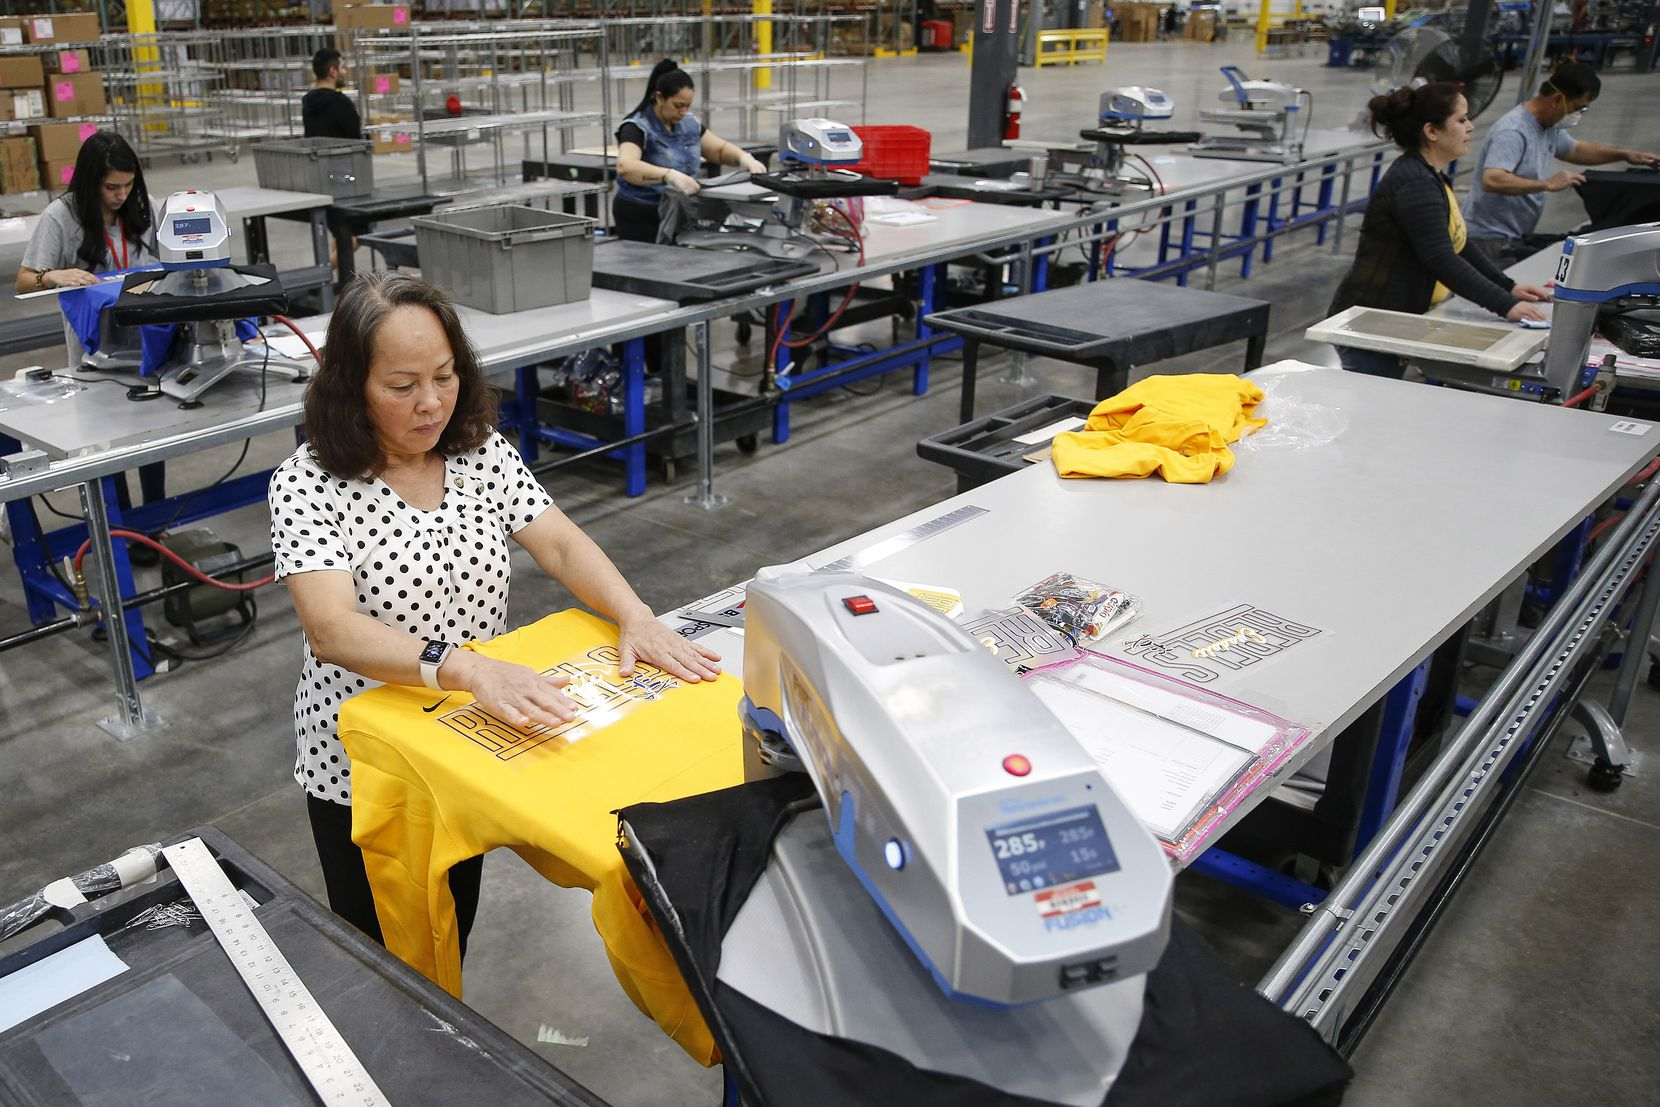 Workers fulfill custom design apparel orders at BSN Sports on May 7 in Grand Prairie.